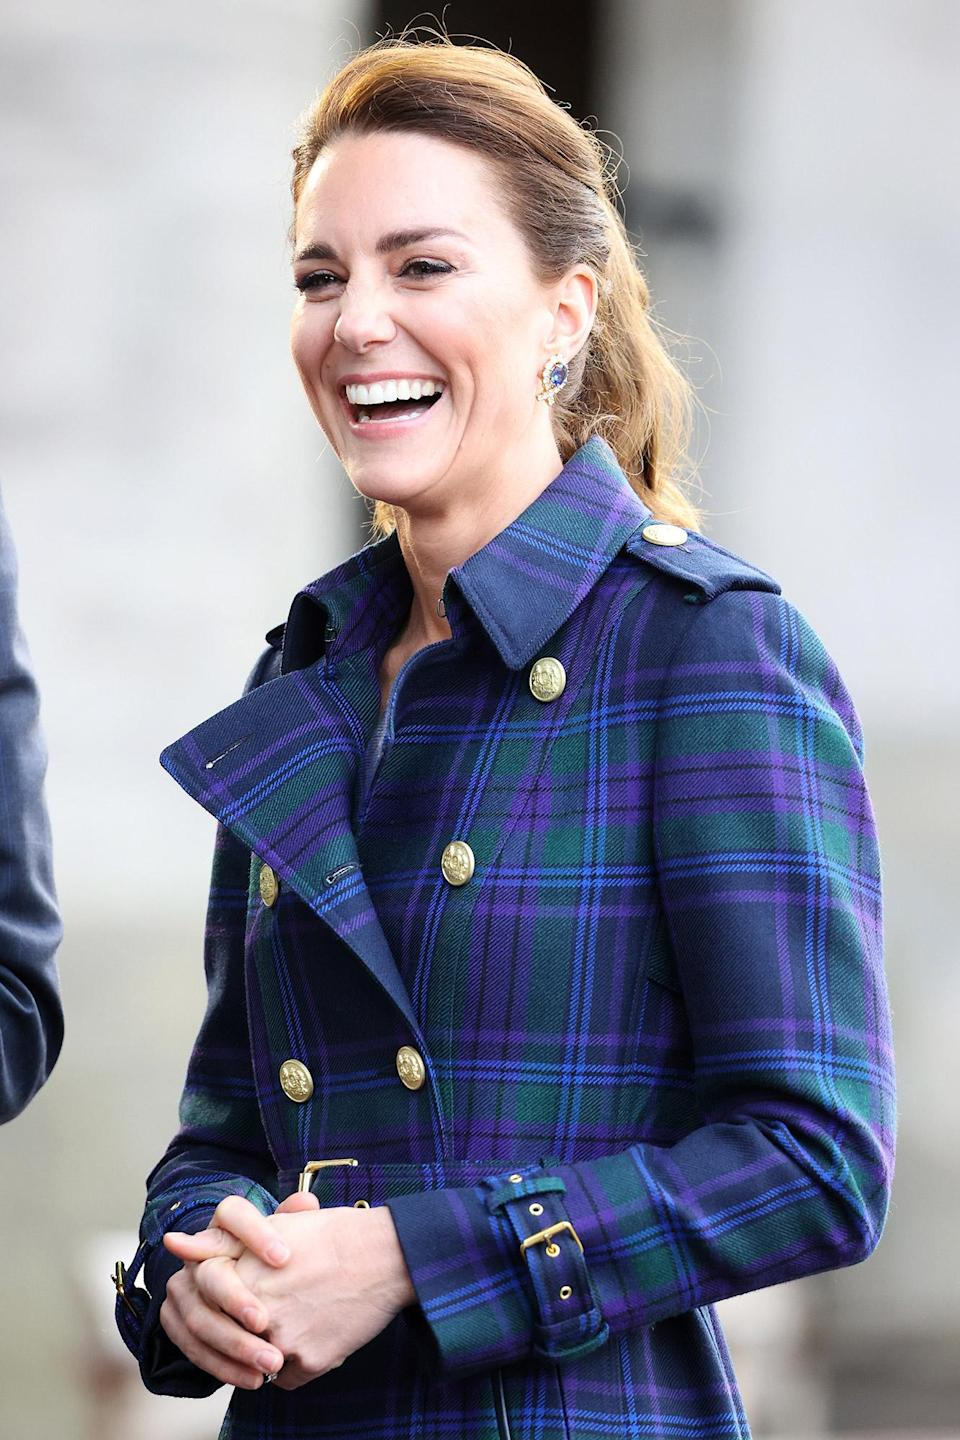 <p>Kate Middleton borrowed a pair of sapphire and diamond earrings from the Queen for a drive-in screening of Disney's <em>Cruella</em> at the Palace of Holyroodhouse in Scotland in May 2021. The Queen has previously worn the earrings with a coordinating necklace.</p>